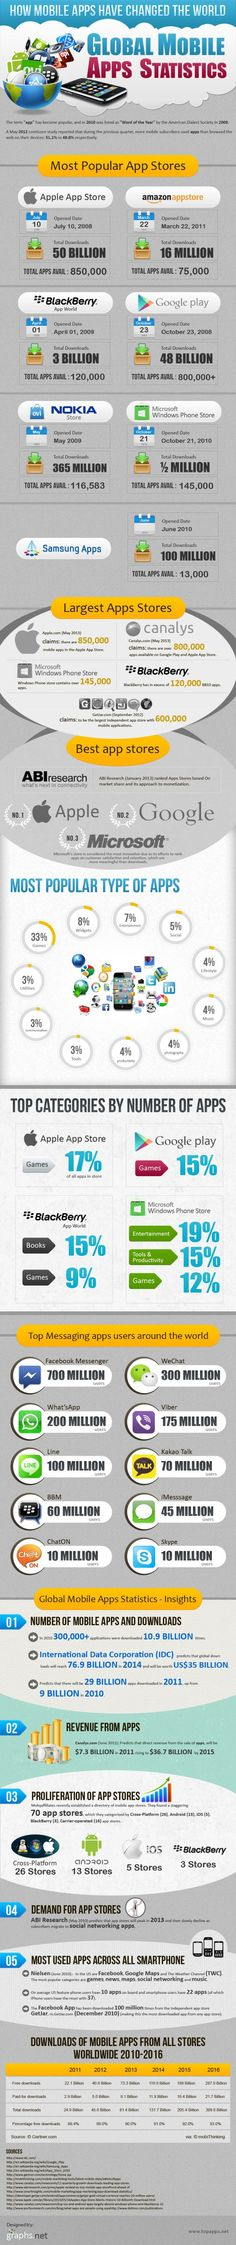 How Mobile Apps Have Changed The World - #infographic #facebook #app #apple #android